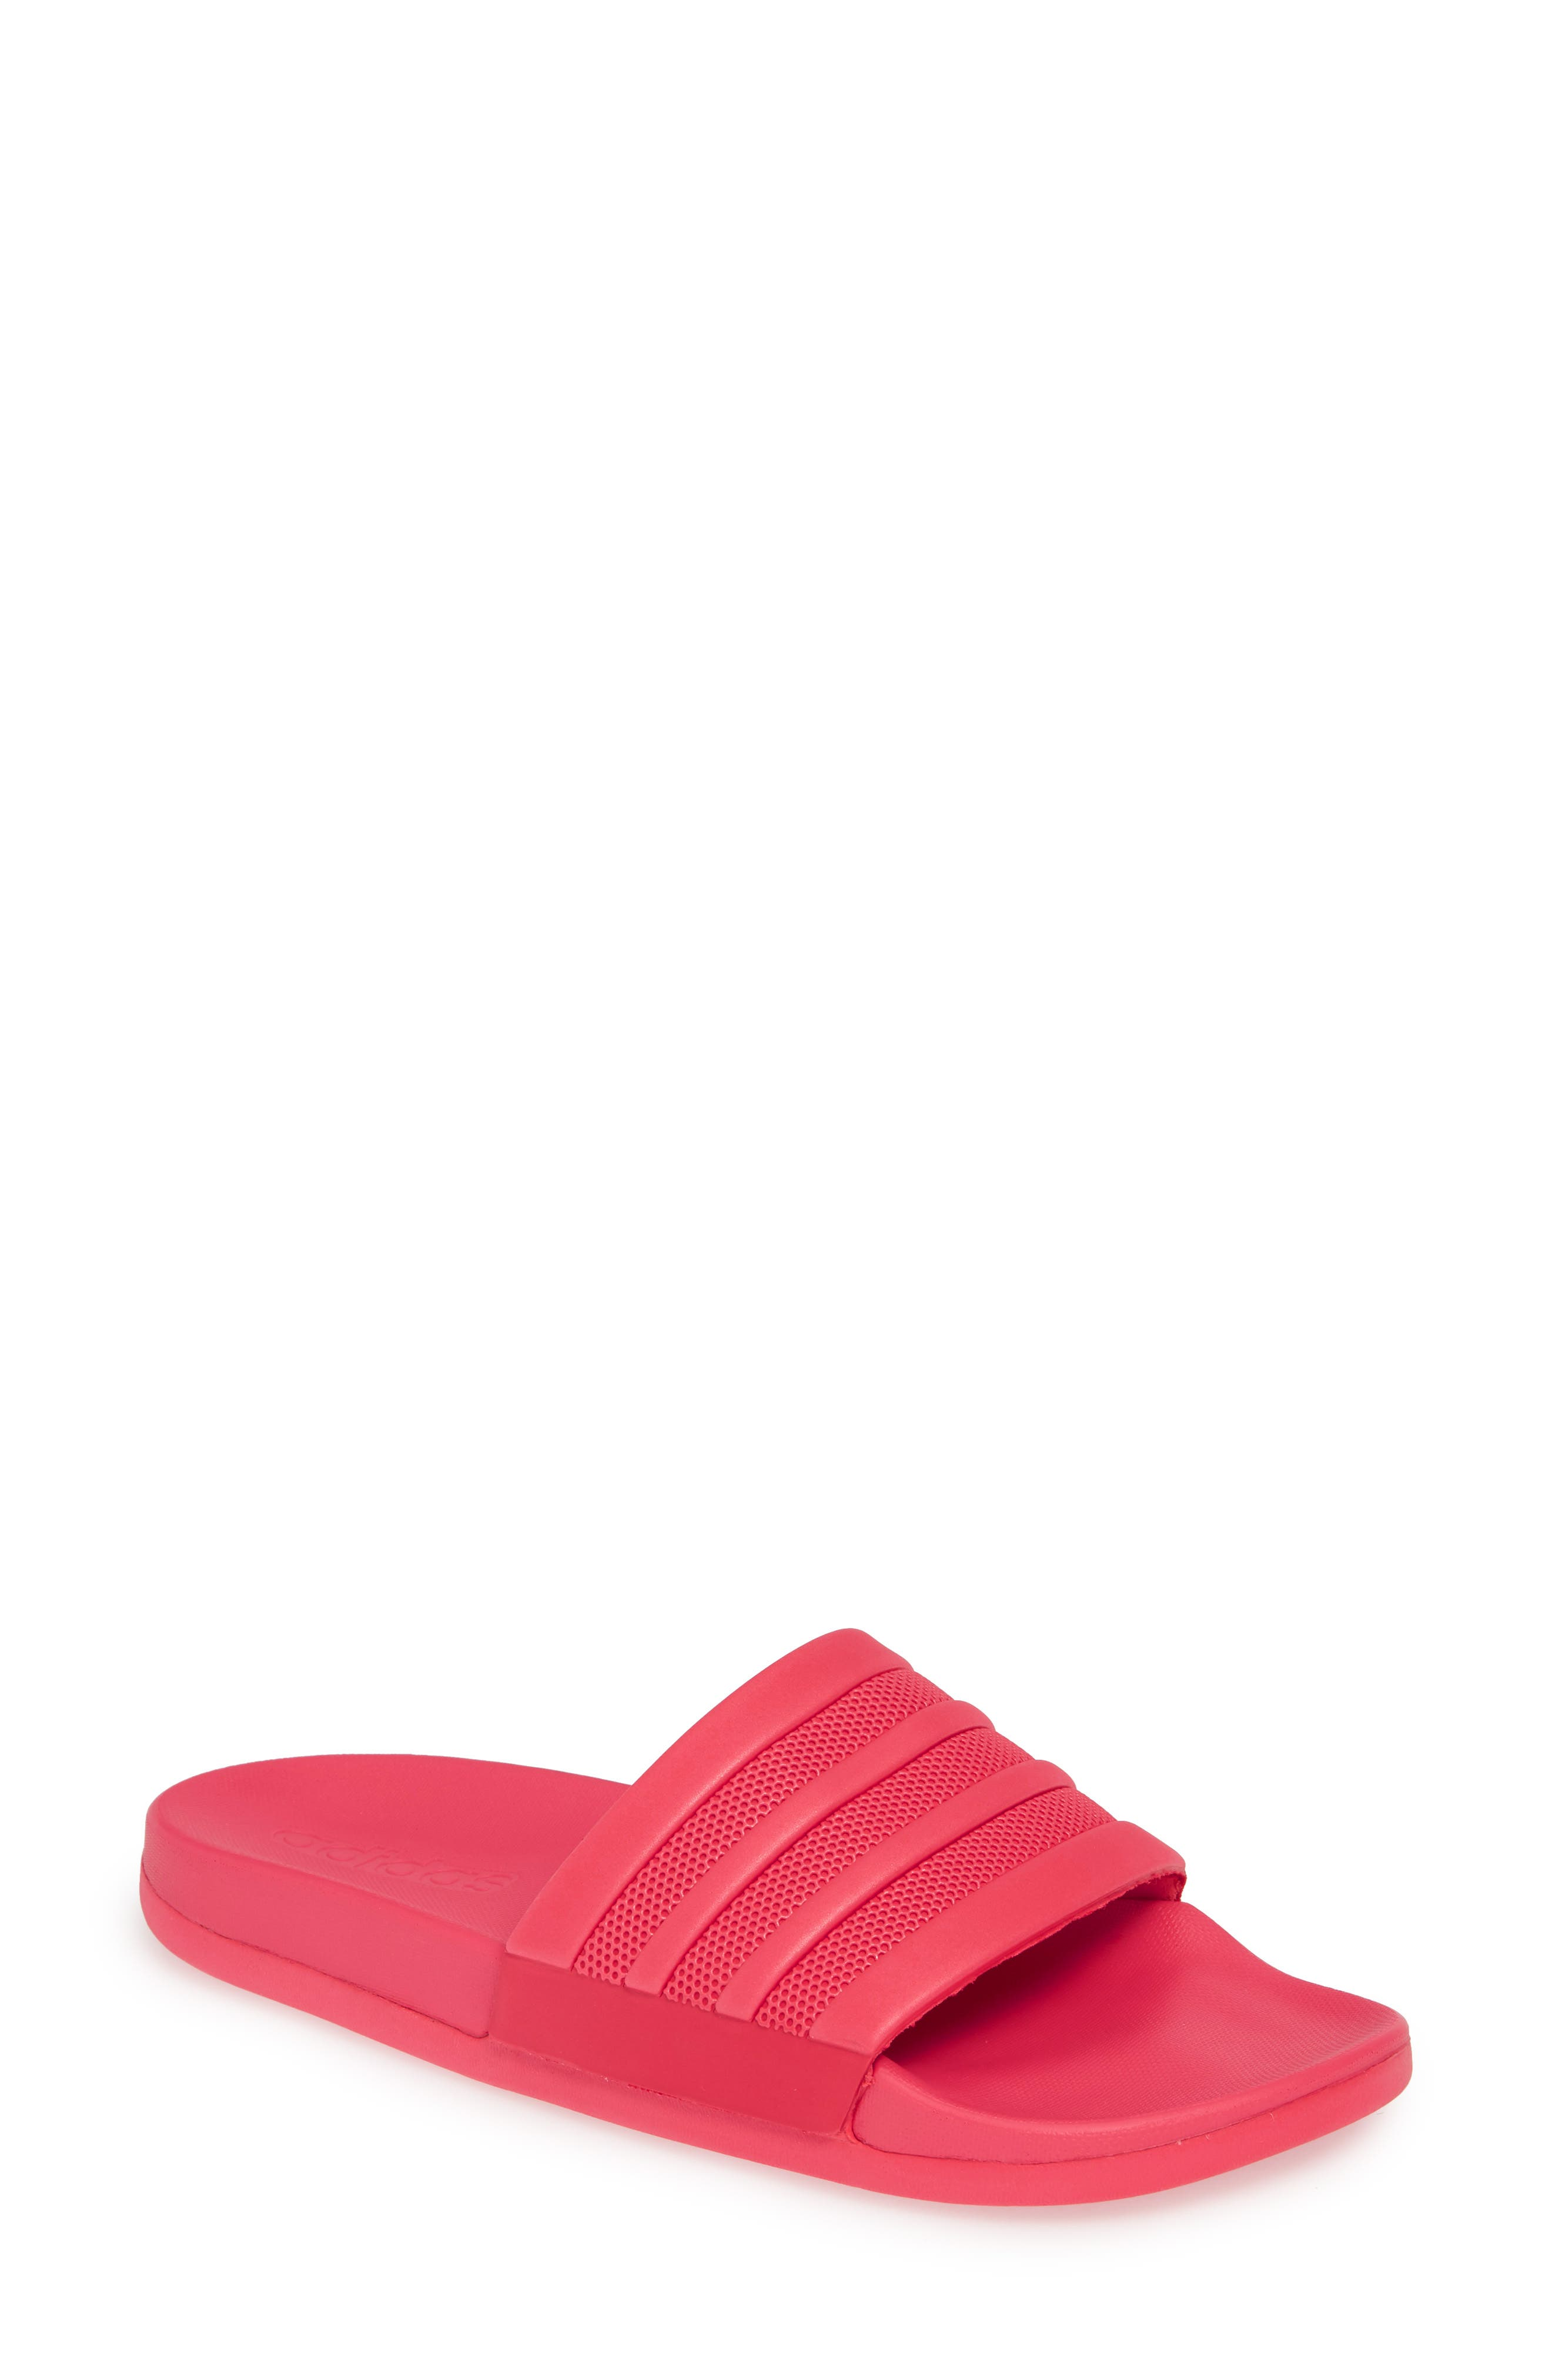 competitive price bff55 b3222 ADIDAS ORIGINALS. Adilette Rubber Comfort Slide Sandals in Active Pink ...